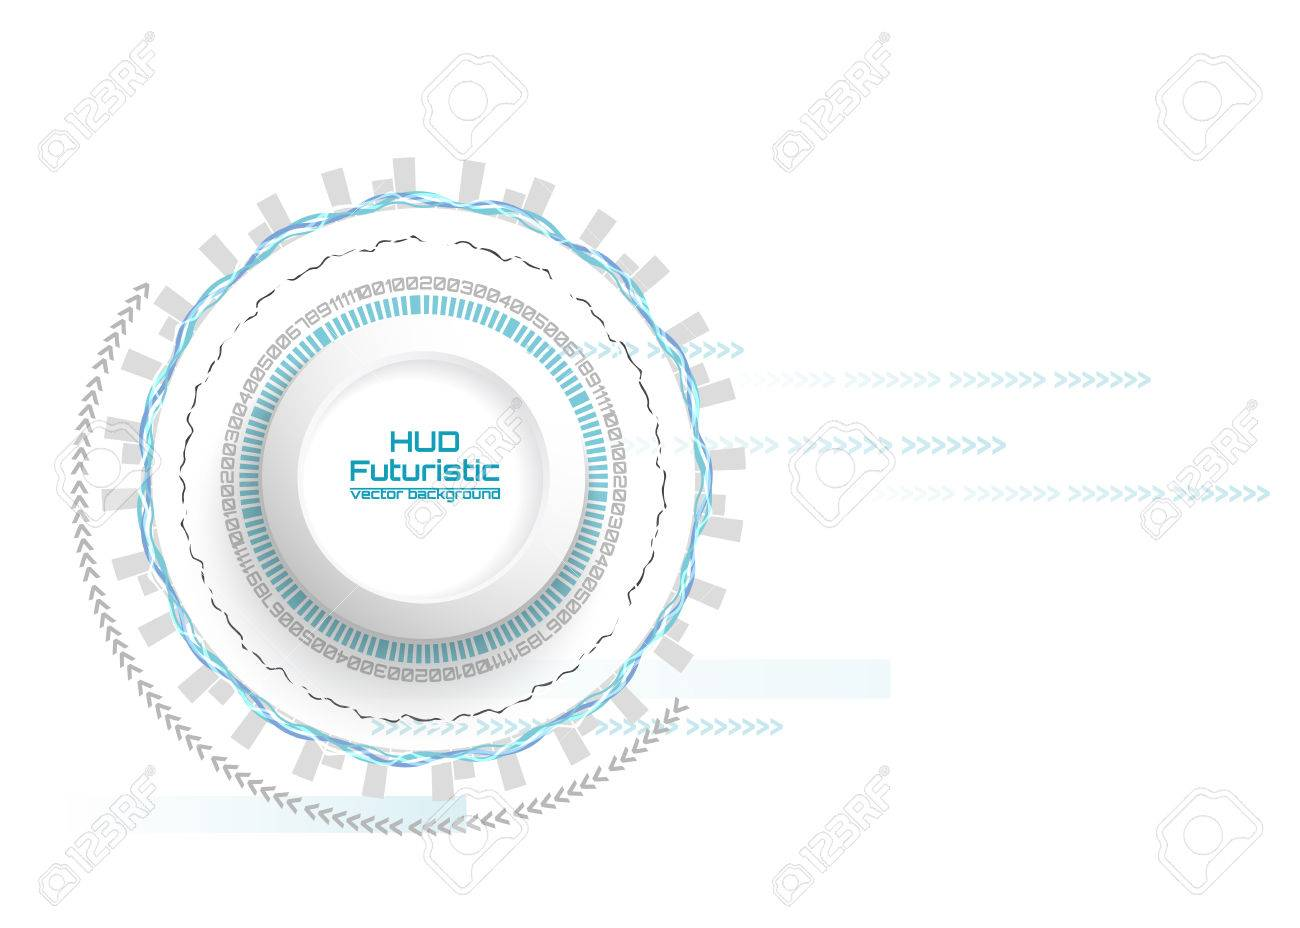 Vector Illustration Abstract Futuristic Circuit Board Hi Tech Blank Computer Digital Technology Concept White 3d Paper Circle For Your Design On